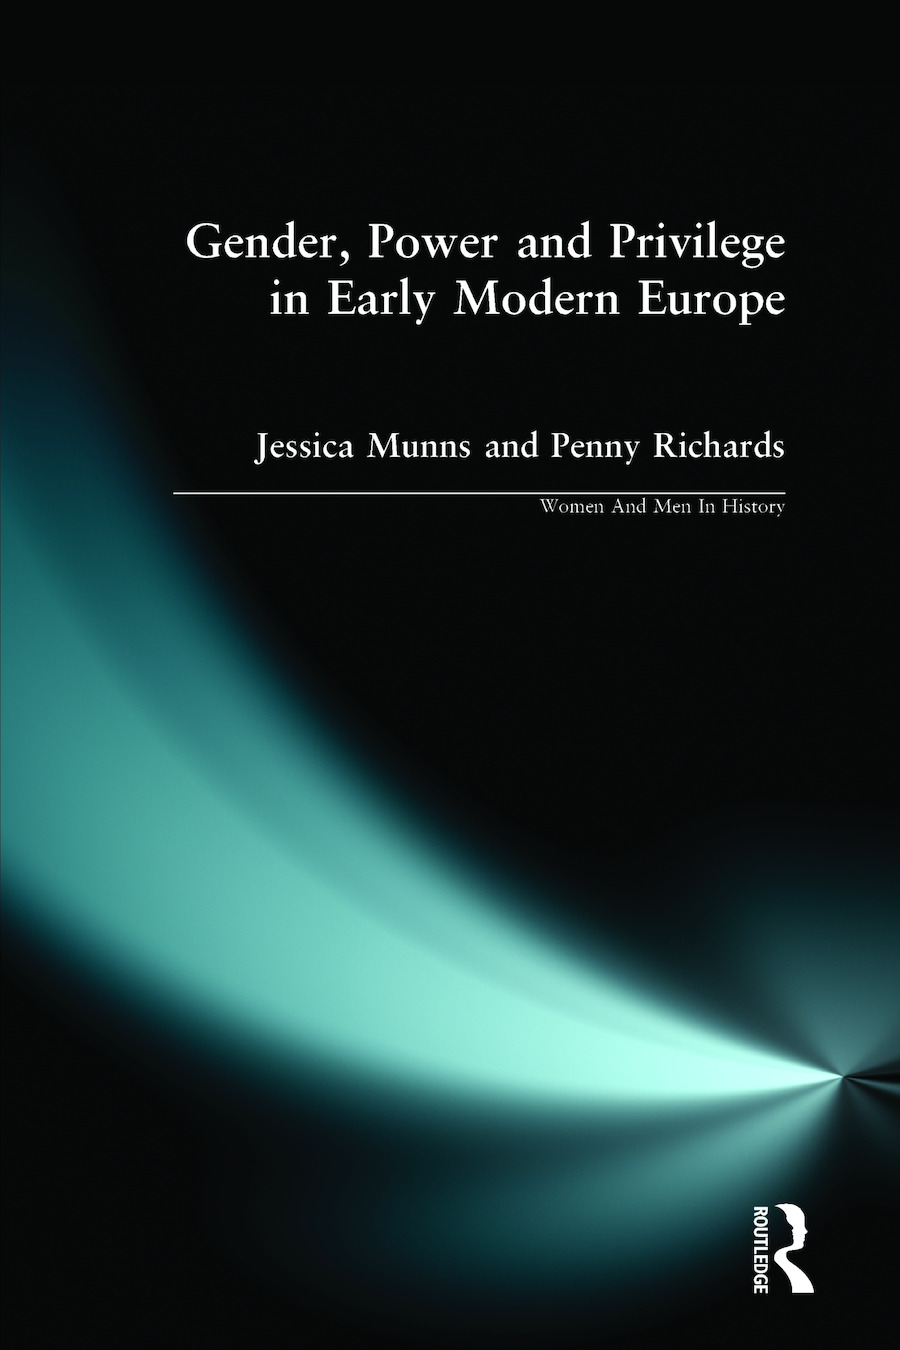 Gender, Power and Privilege in Early Modern Europe: 1500 - 1700, 1st Edition (Paperback) book cover